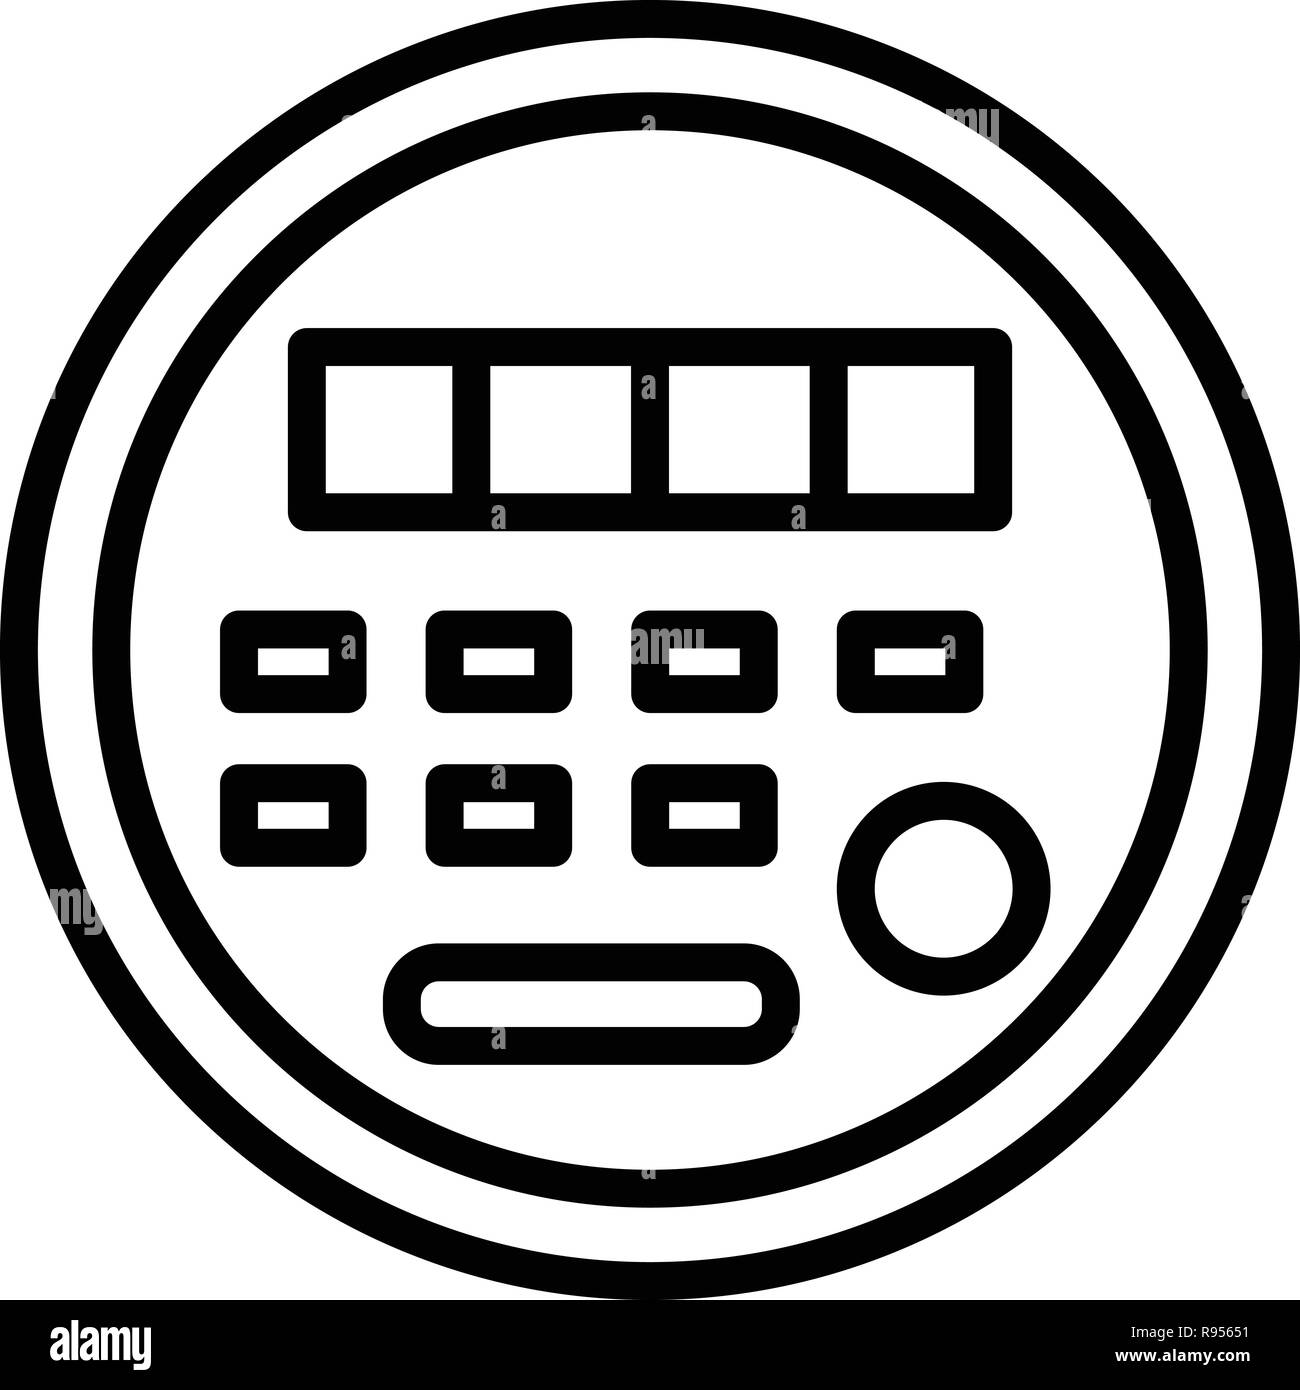 Electric energy meter icon, outline style - Stock Image